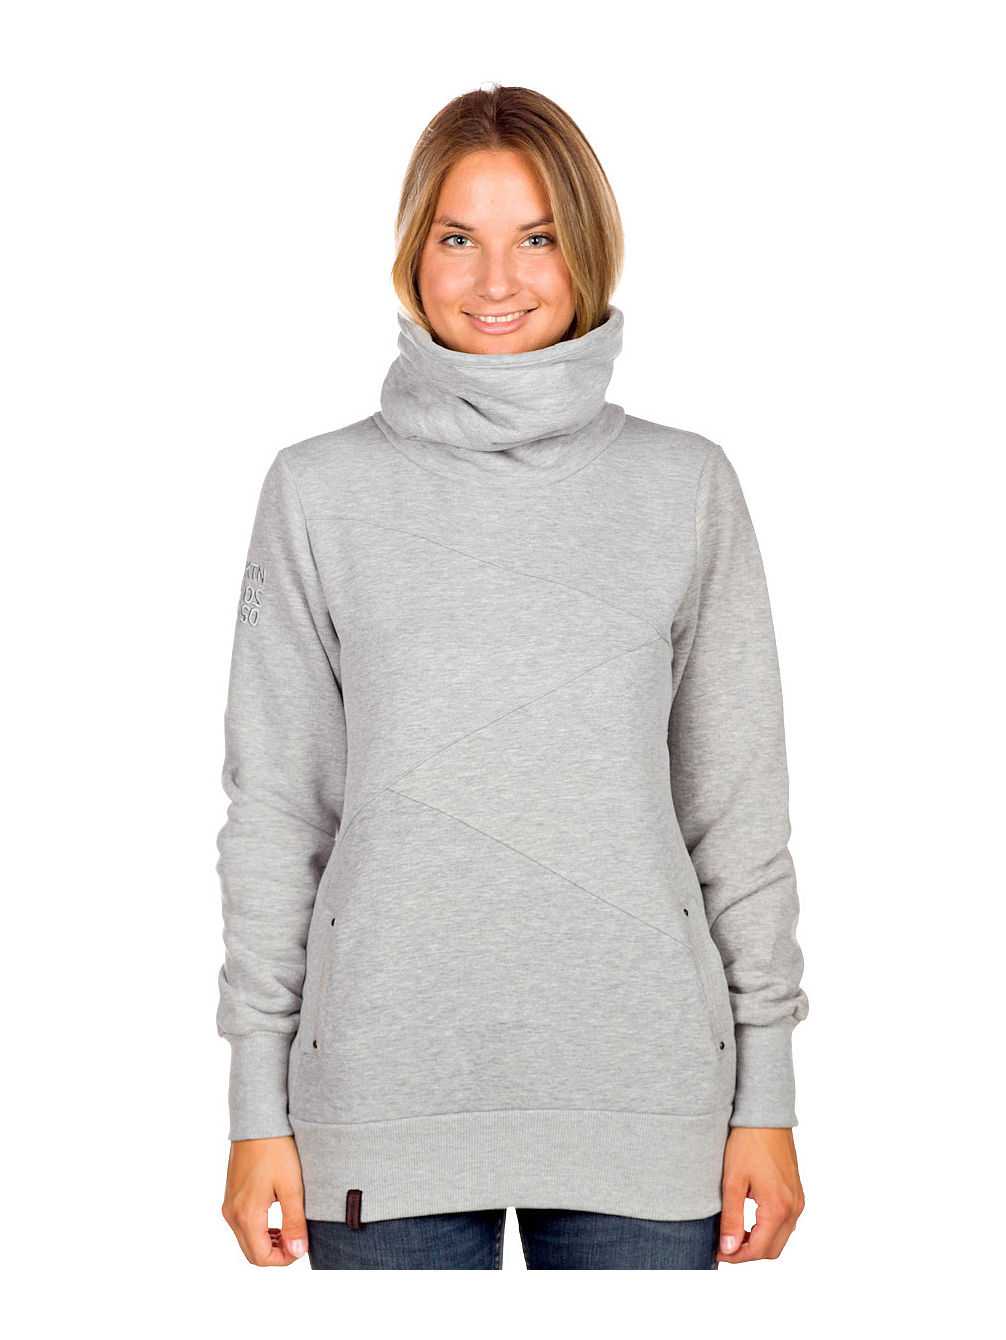 Casimir II Sweater Women